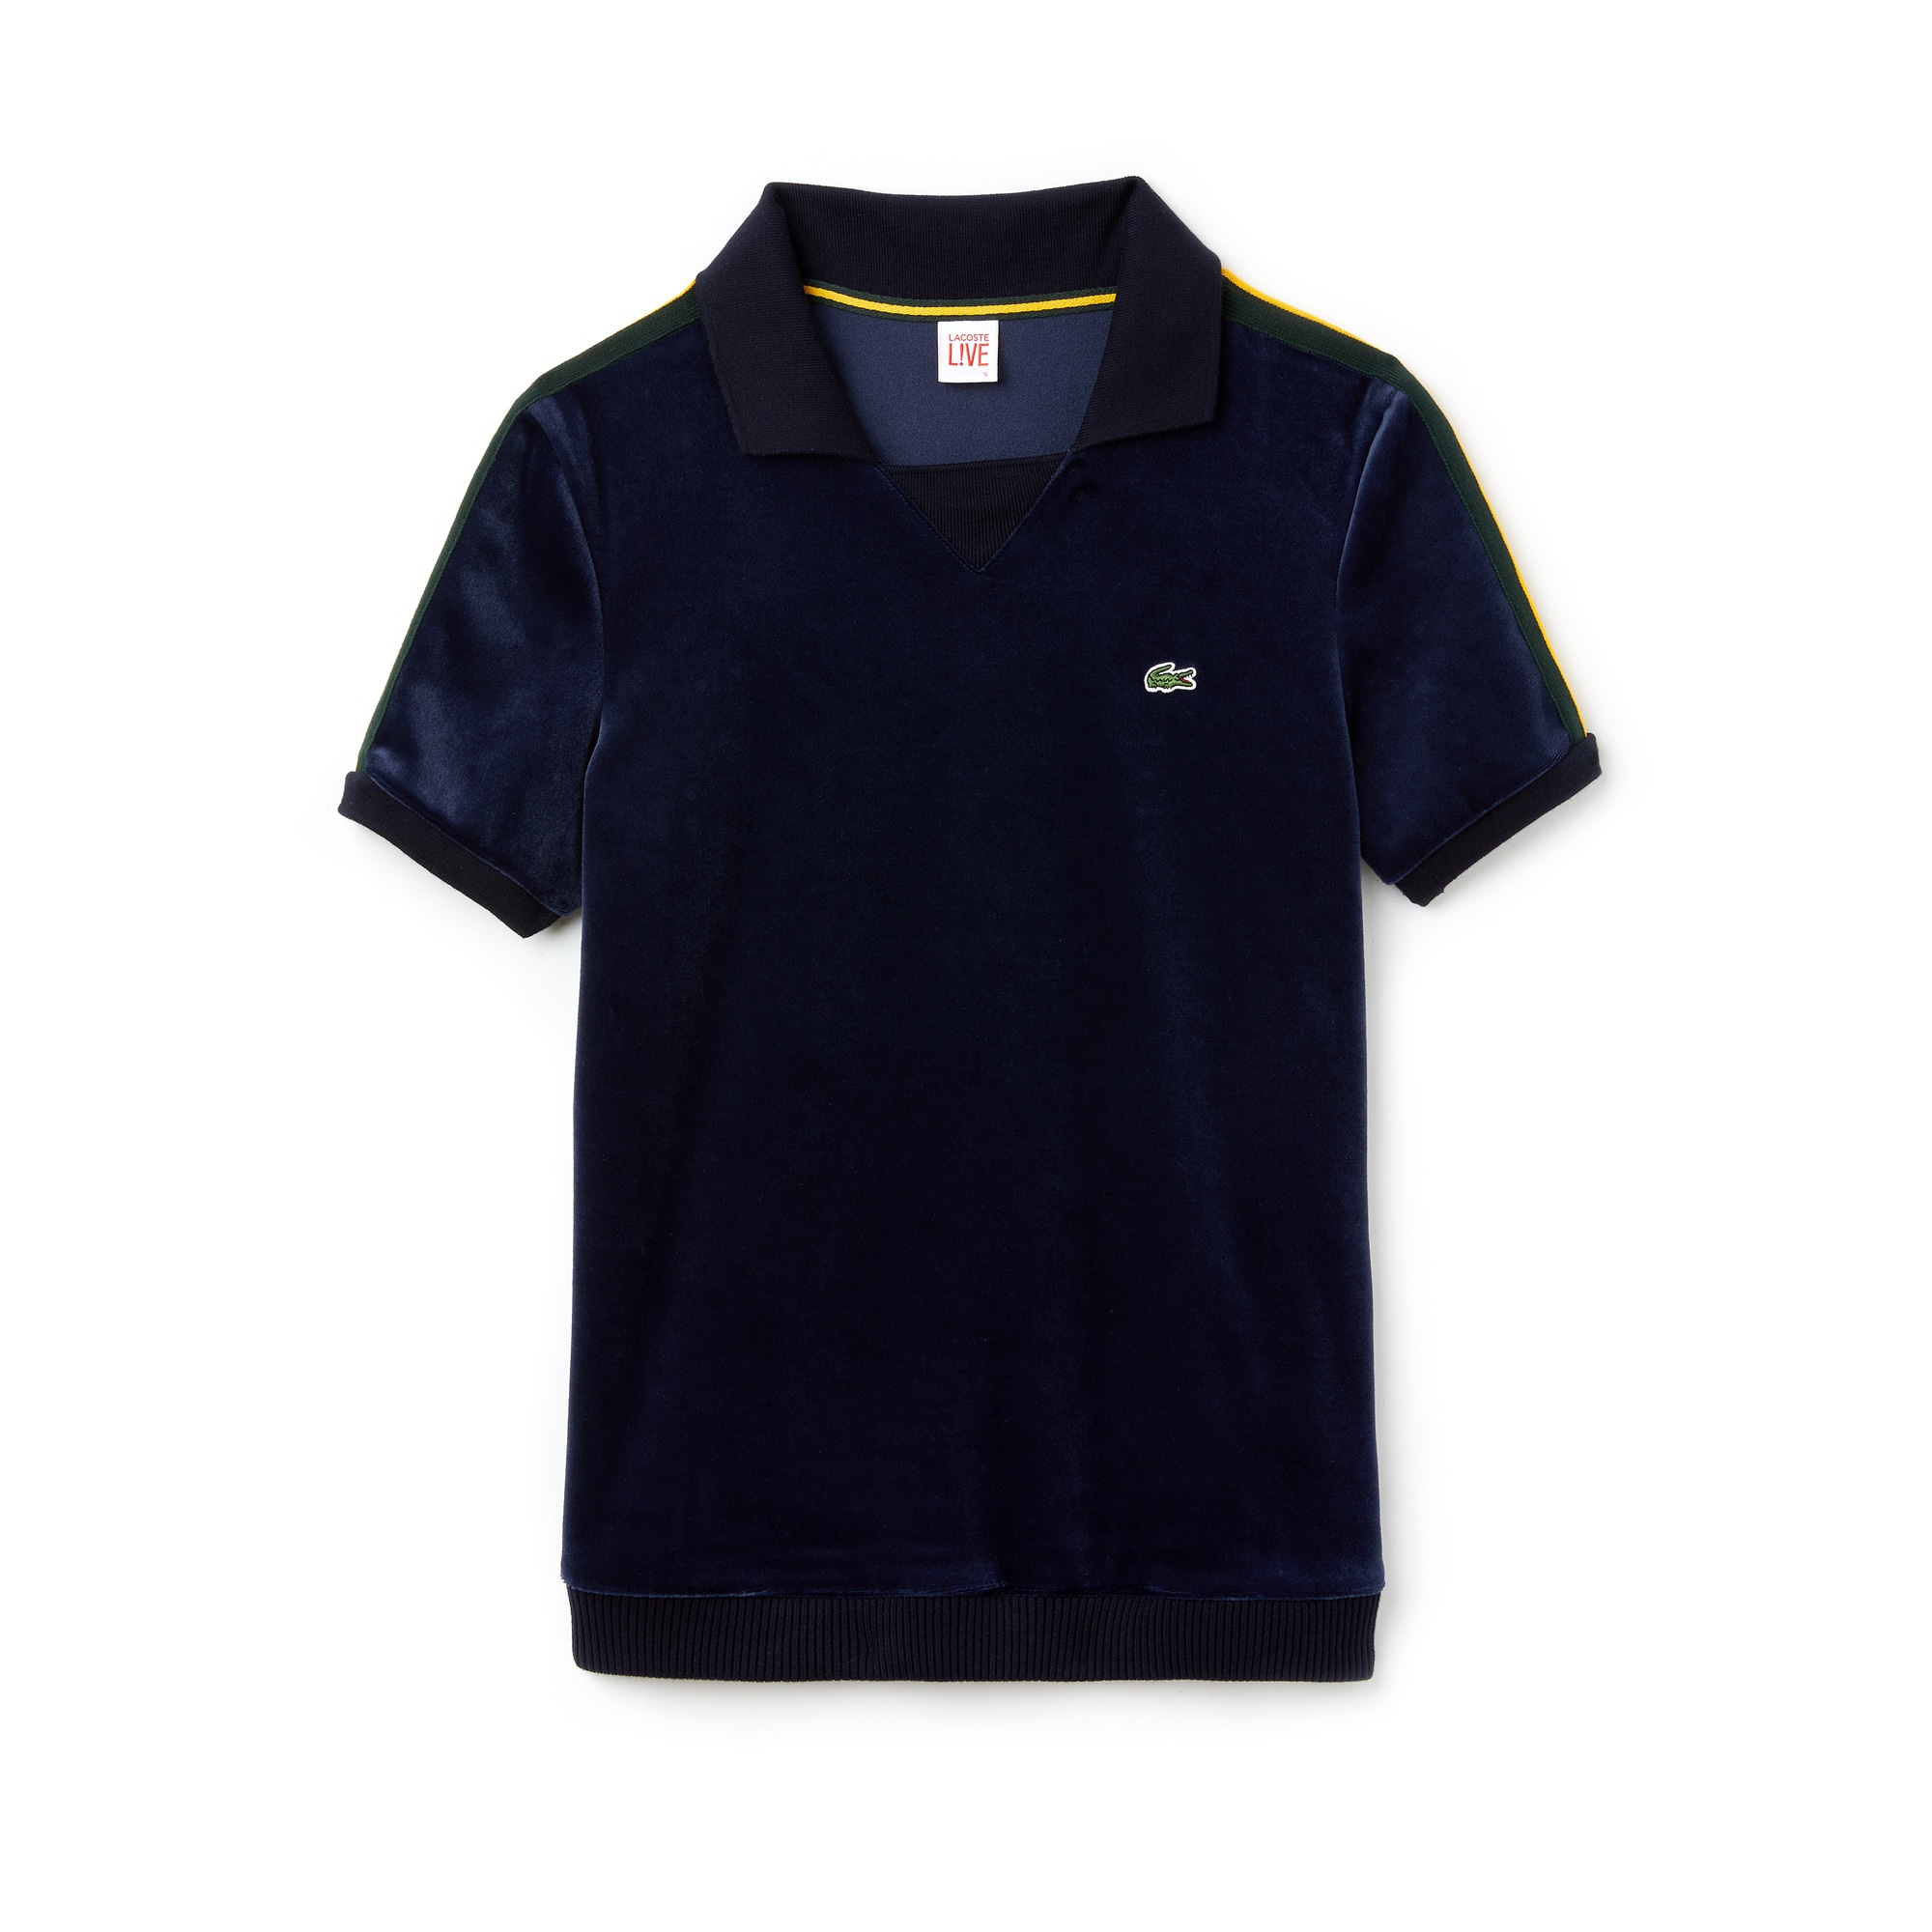 Women's Lacoste LIVE Boxy Fit Contrast Bands Velour Polo